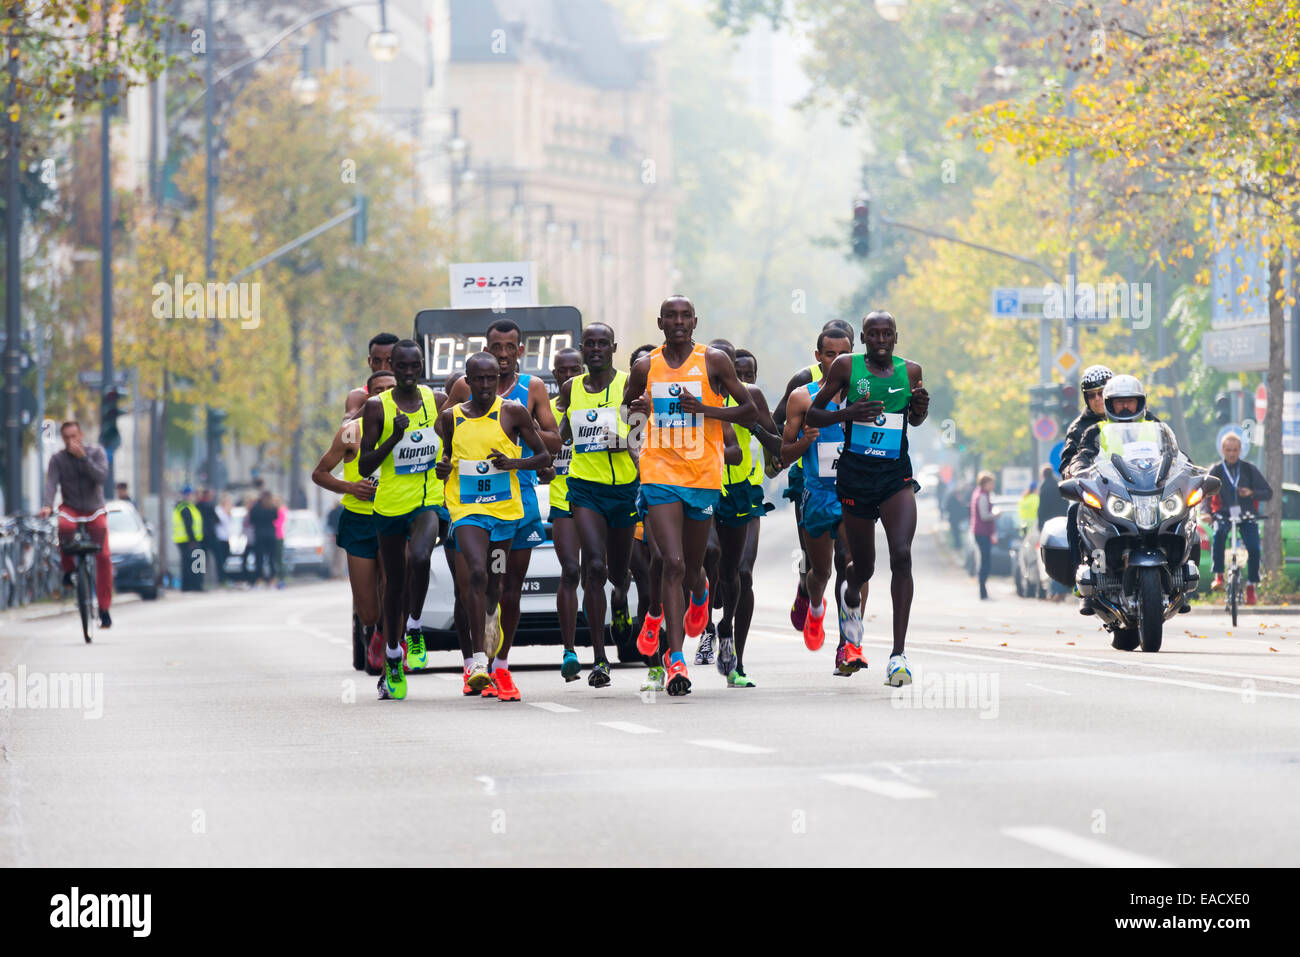 33rd BMW Frankfurt Marathon, group with the elite marathon runners and Mark Kiptoo, the eventual winner of the men's - Stock Image